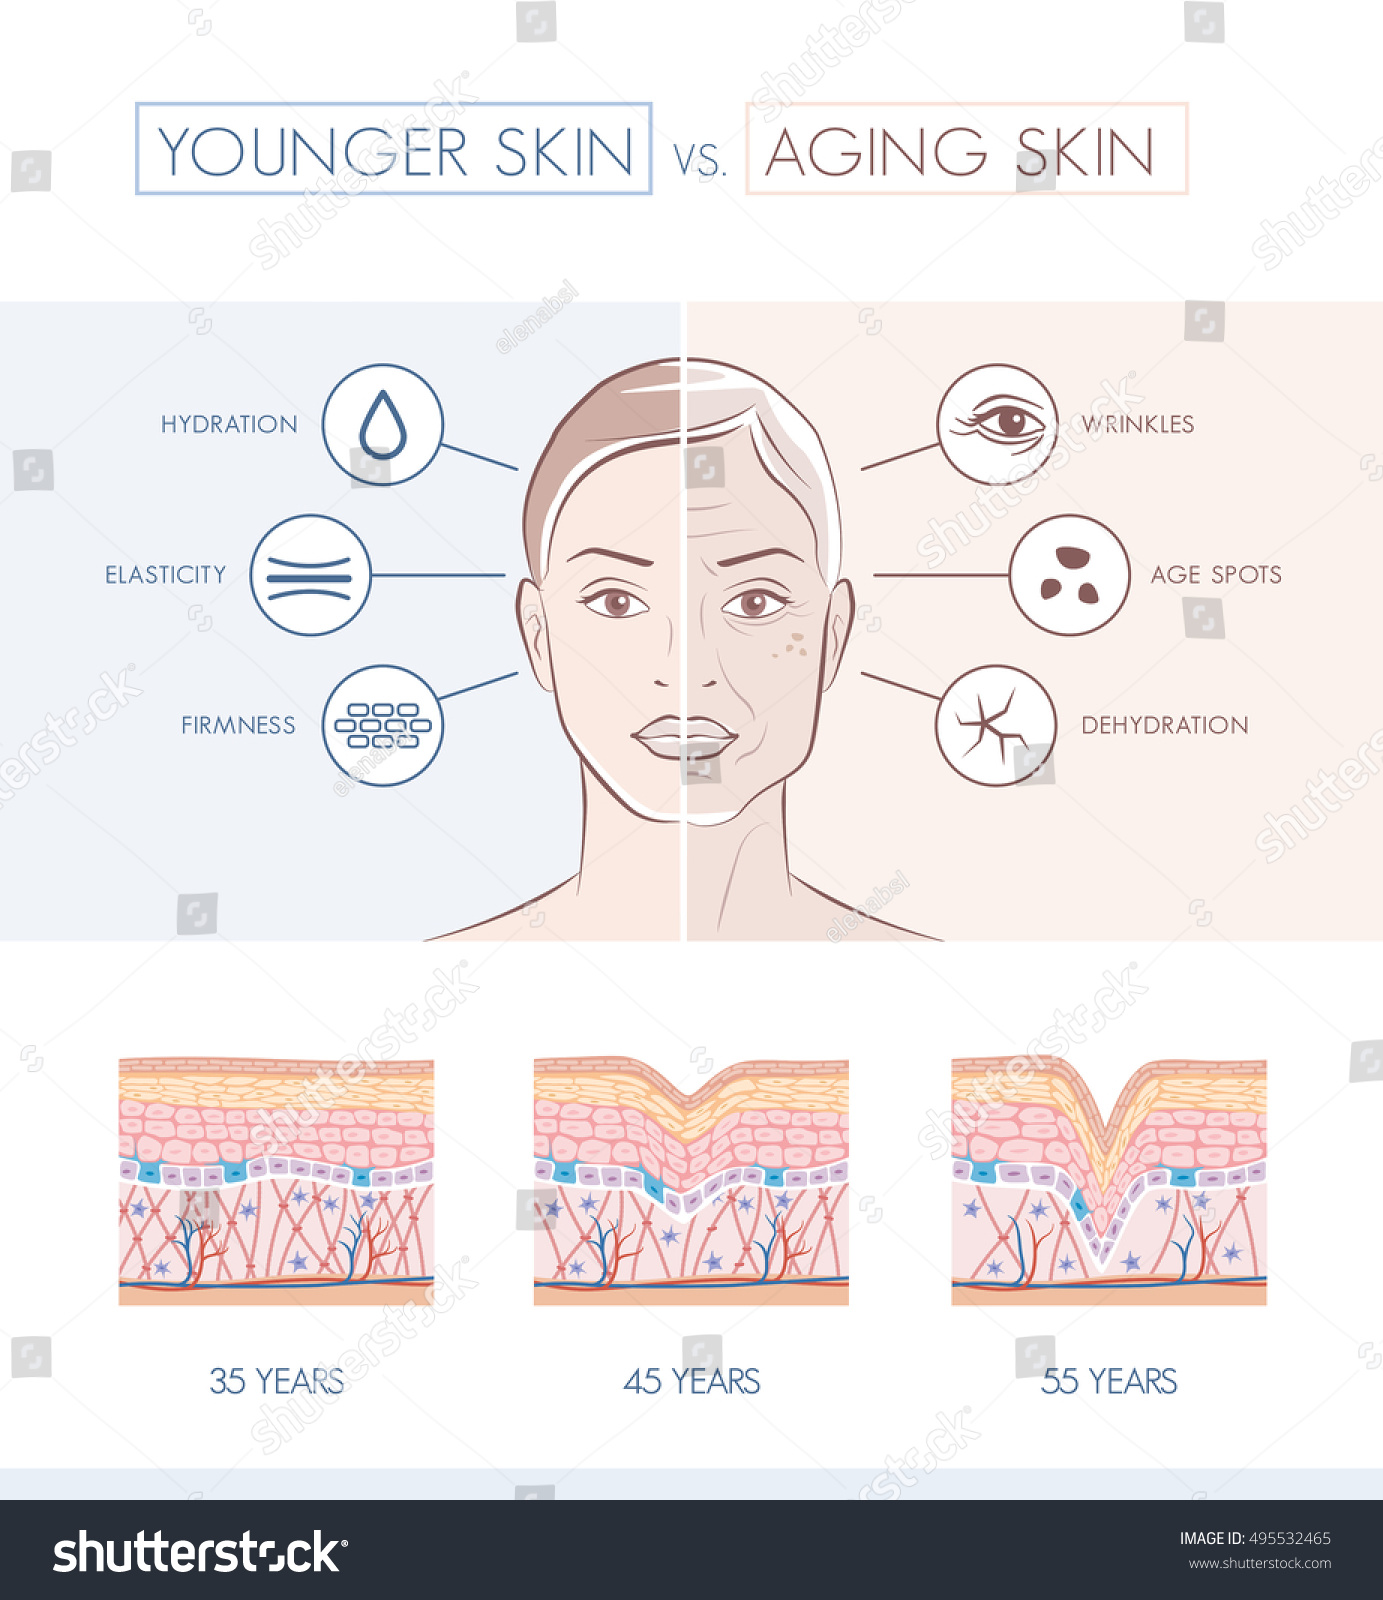 Young Healthy Skin Older Skin Comparison Stock Vector Royalty Free